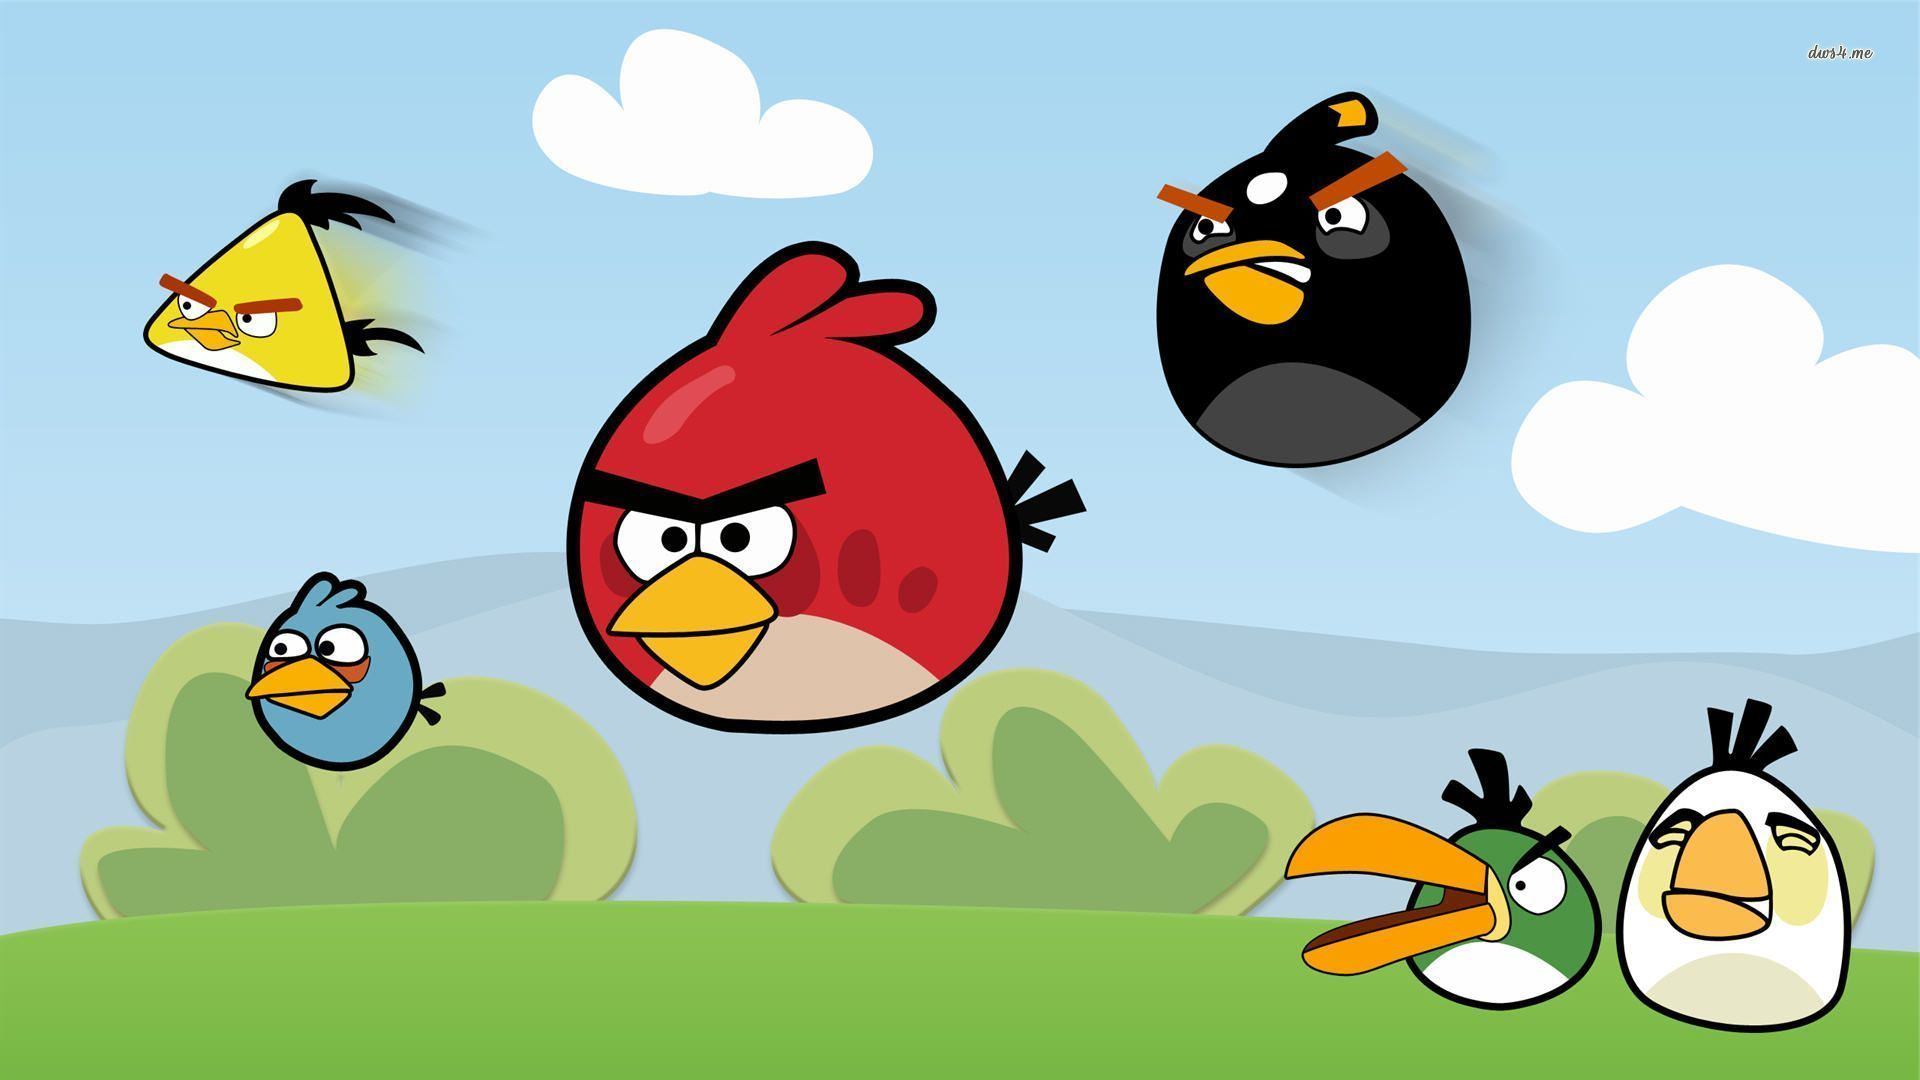 Angry Bird Wallpapers - Wallpaper Cave